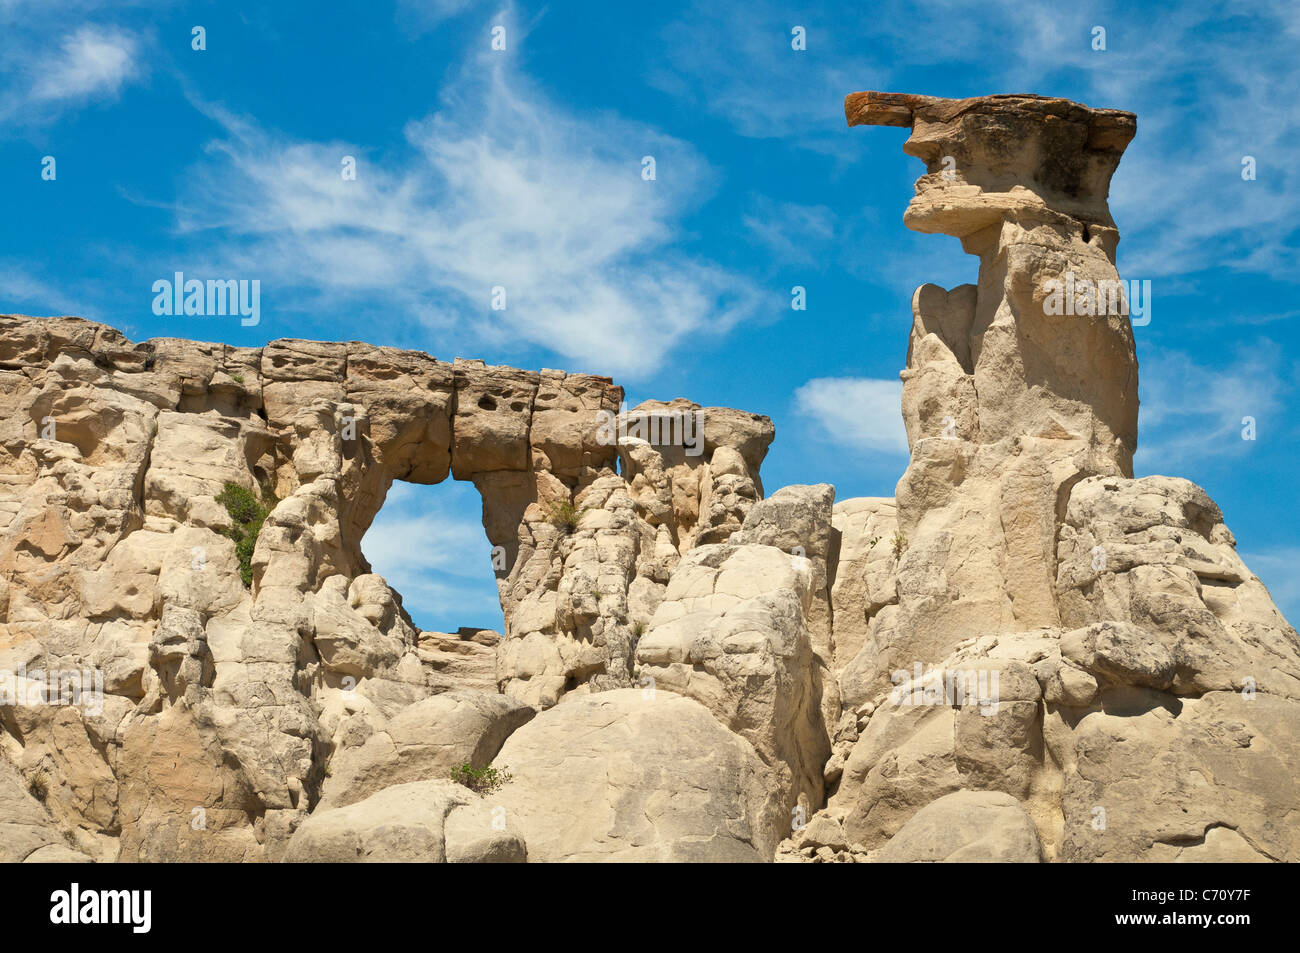 Hole in the Wall rock formation, Upper Missouri River Breaks National Monument, Montana. Stock Photo